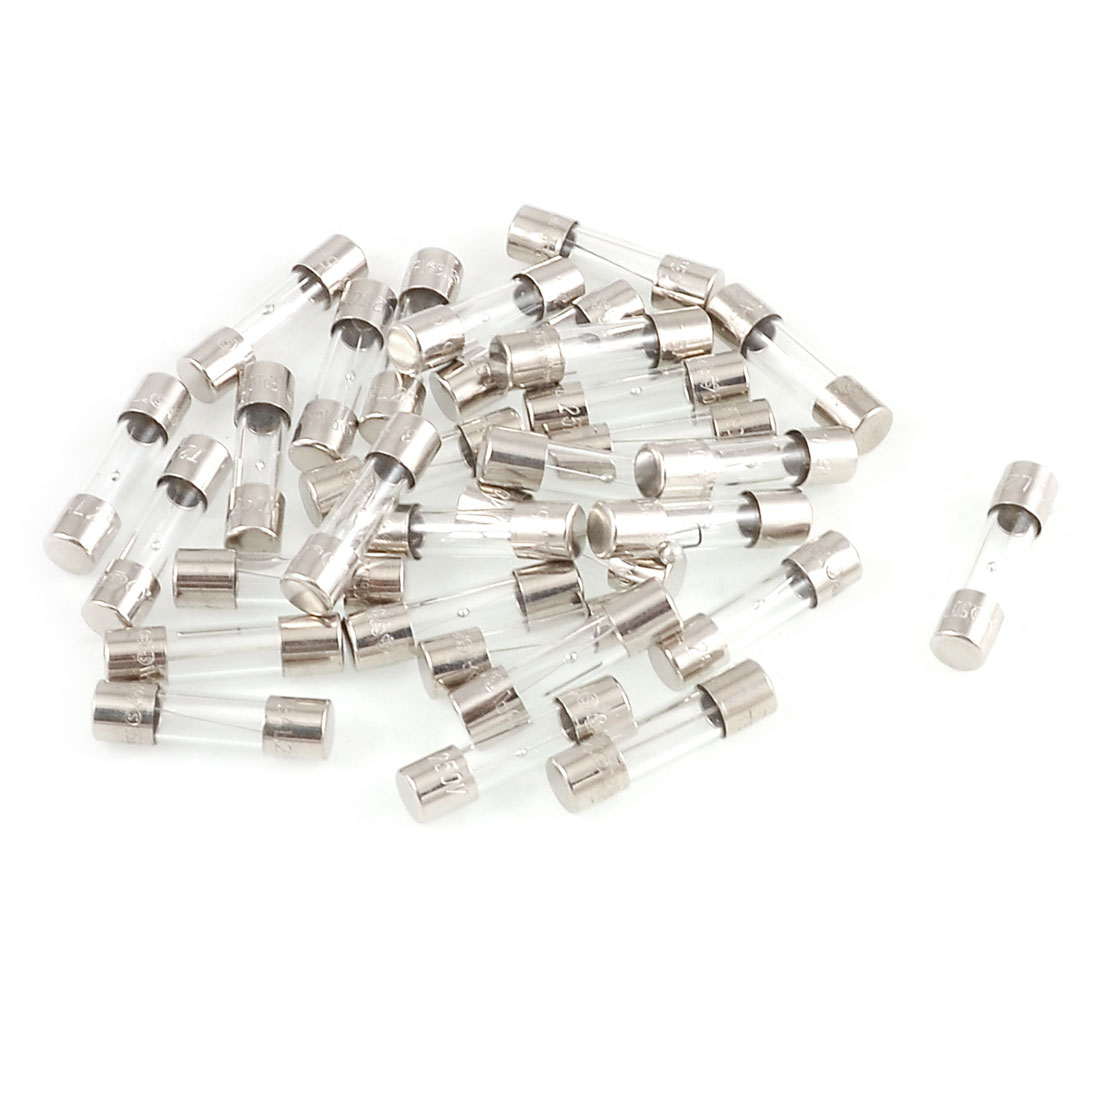 30 Pcs Time Delay 250V 2A 3.15A 5A Glass Tube Fuses Cartridge 5x20mm